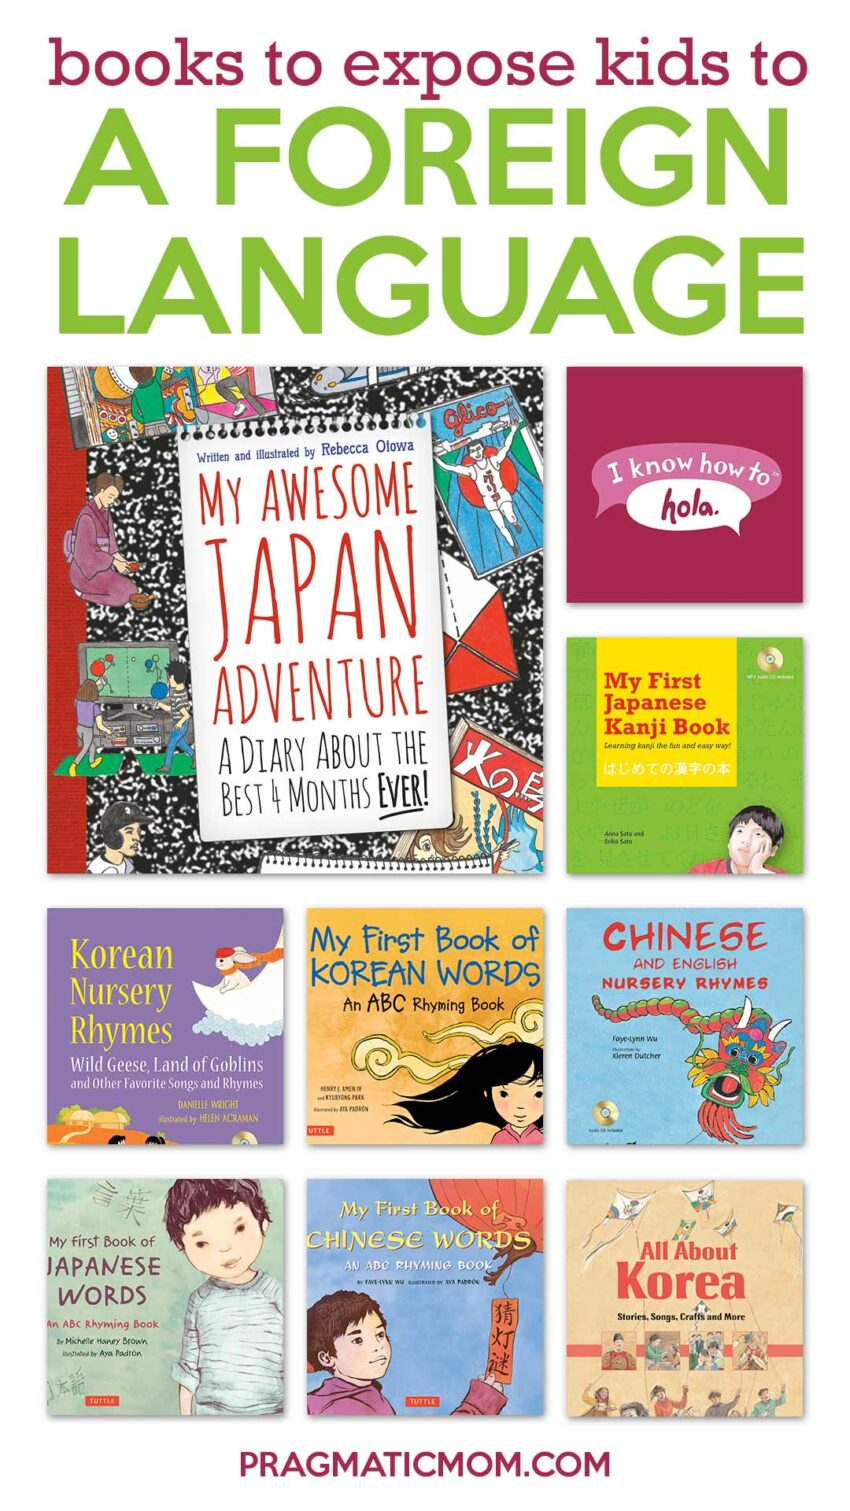 Books to Expose Kids to a Foreign Language